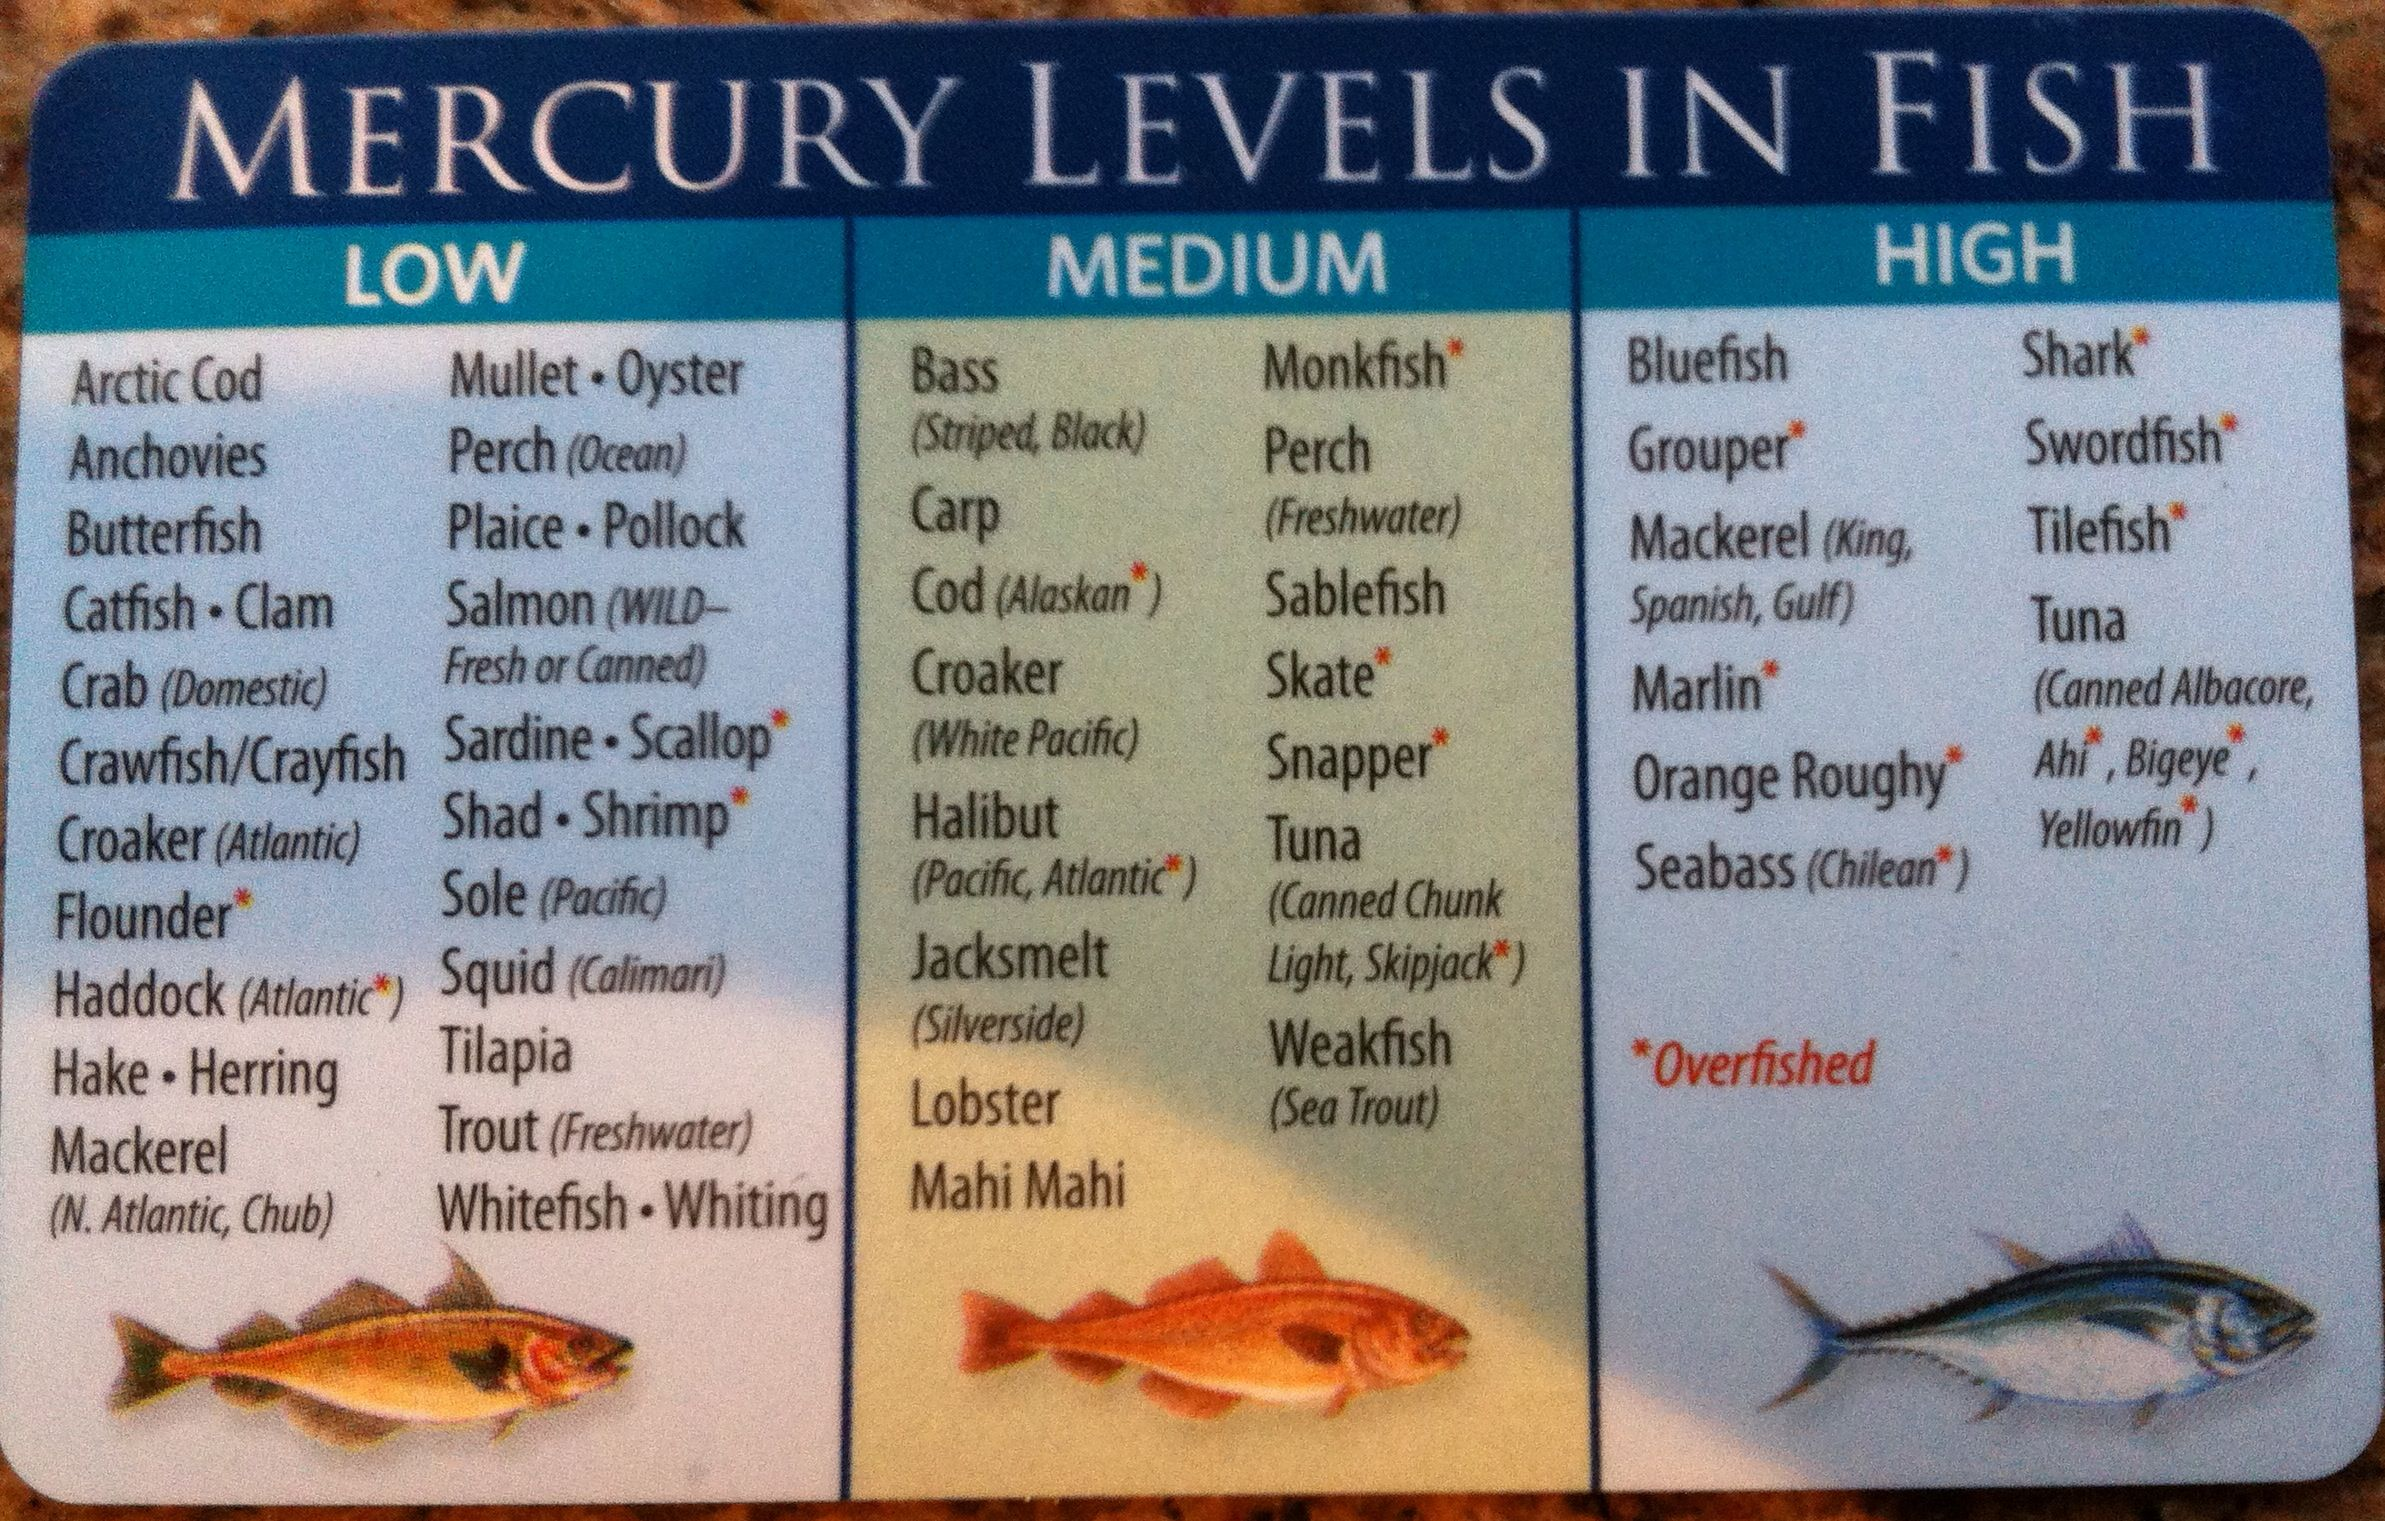 6 hidden warning signs that mercury accumulation is